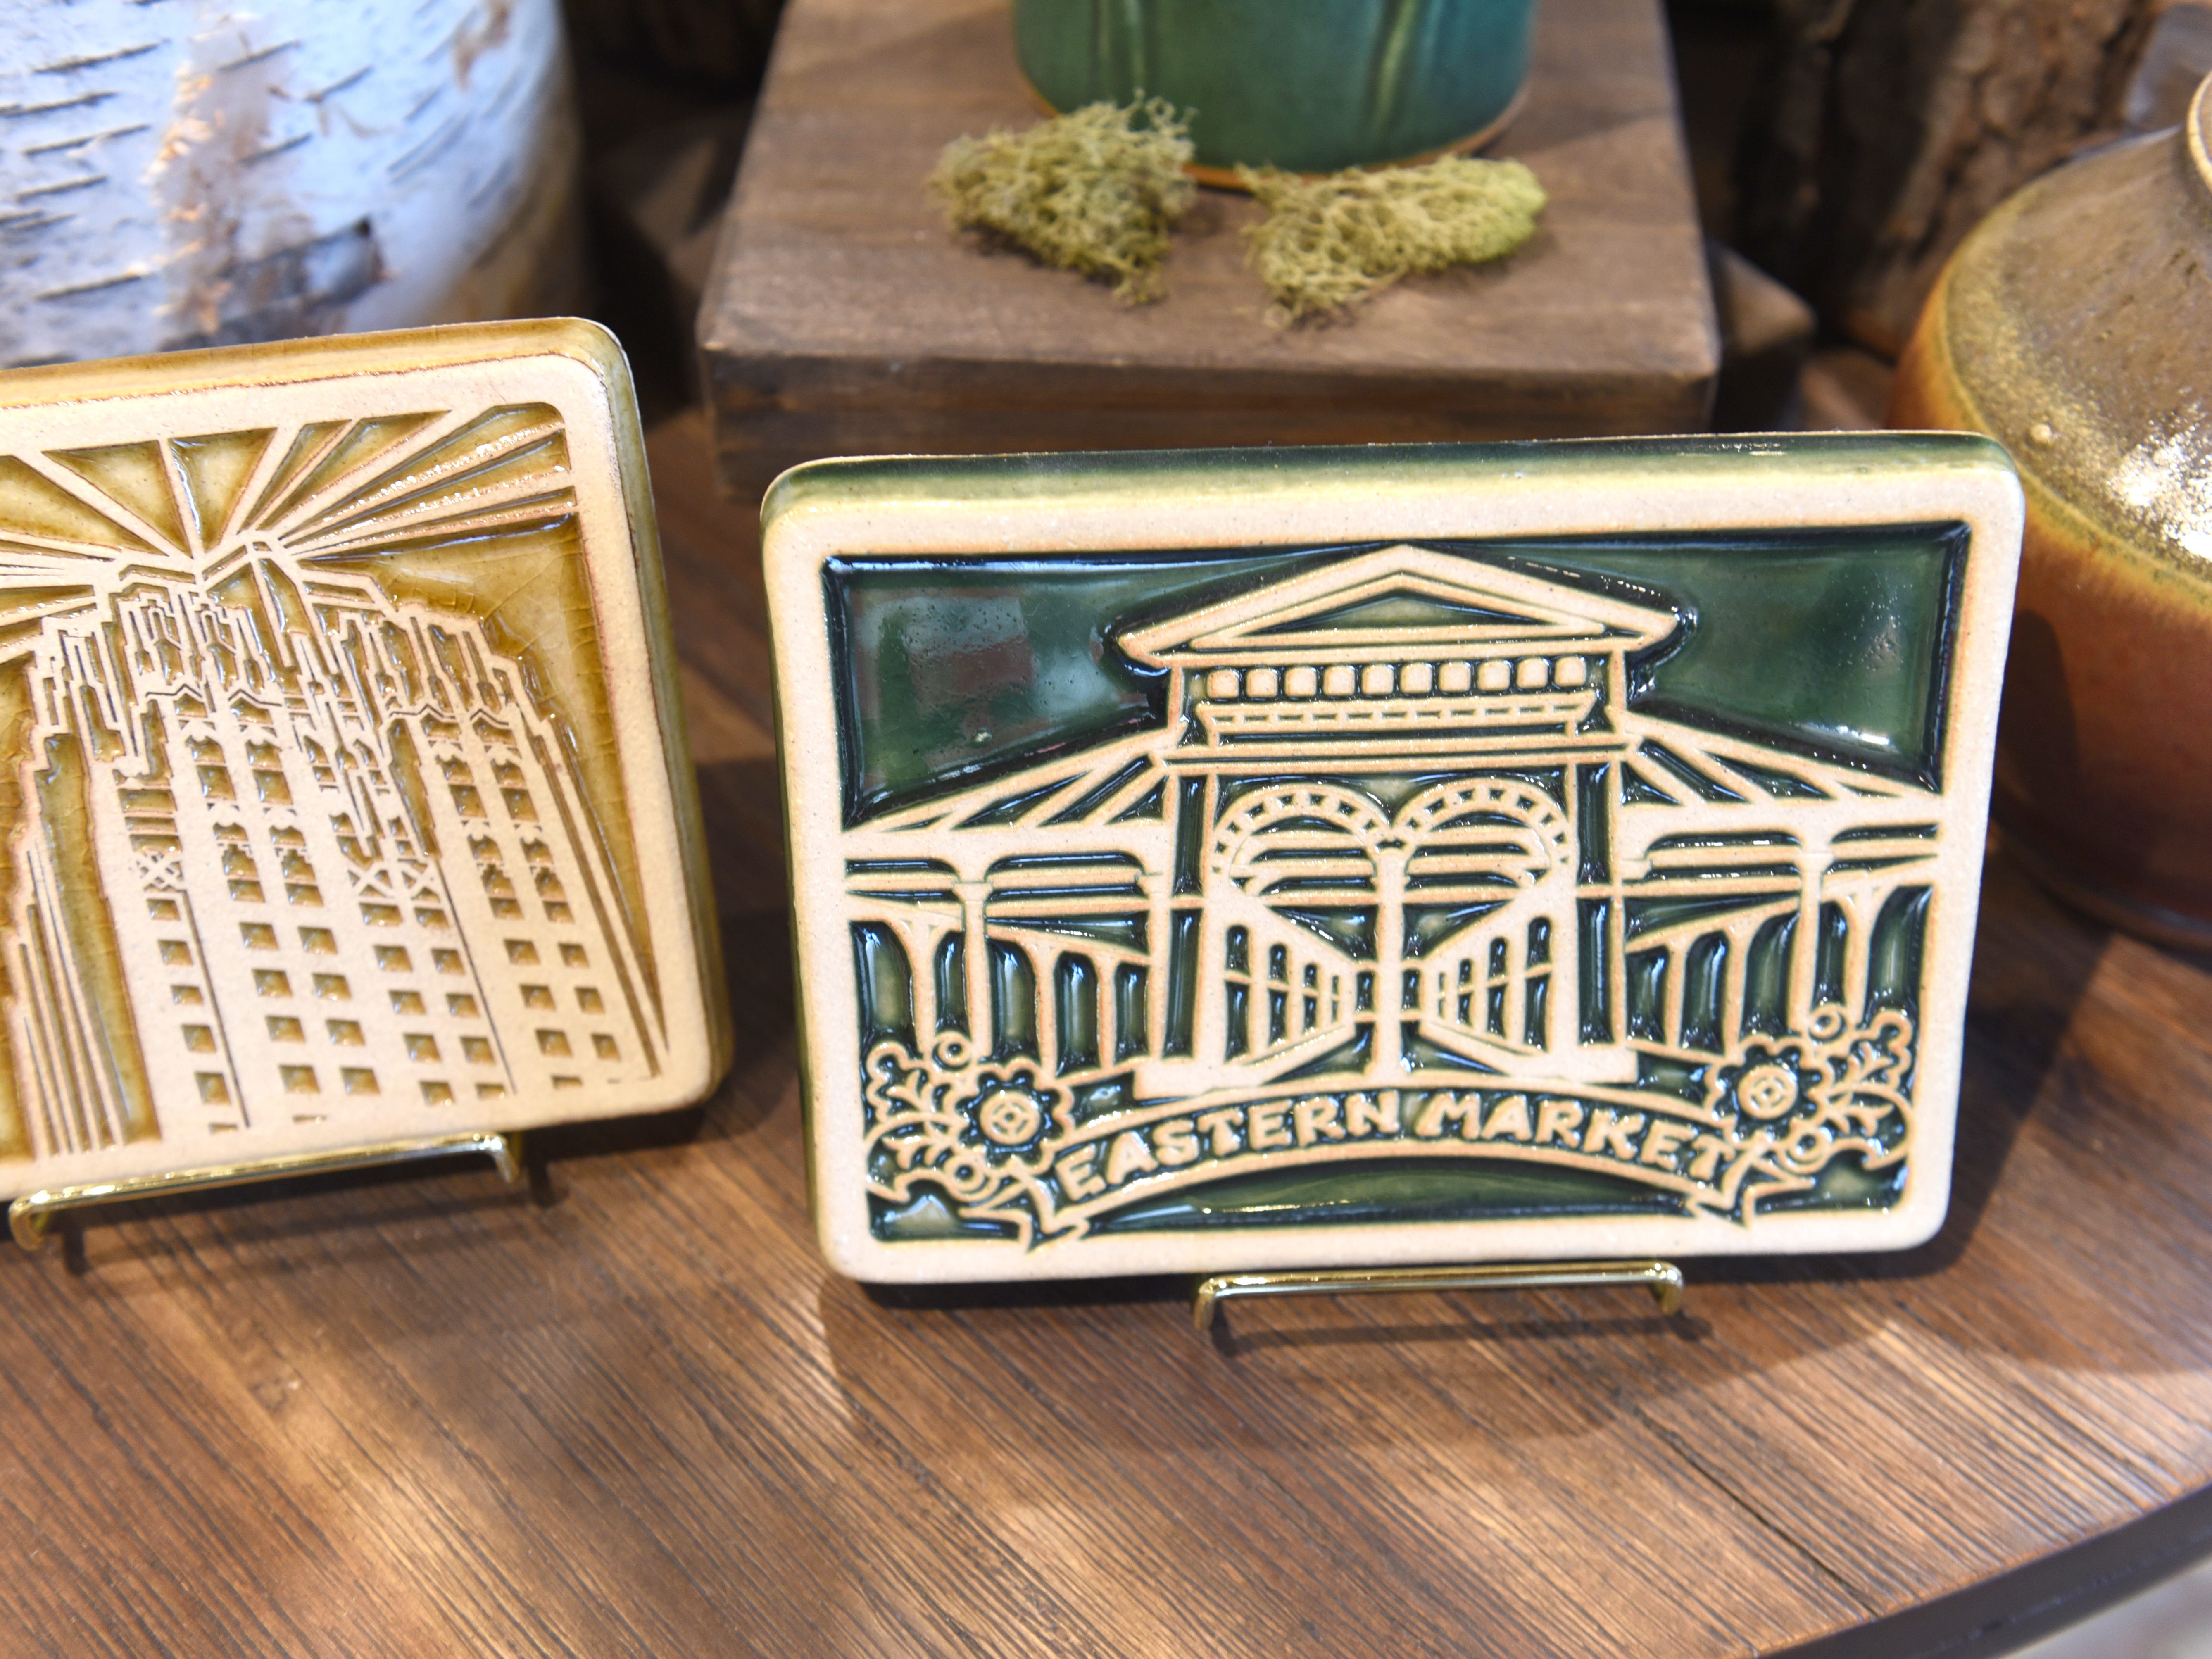 A tile dedicated to historic Eastern Market is made at Pewabic Pottery .